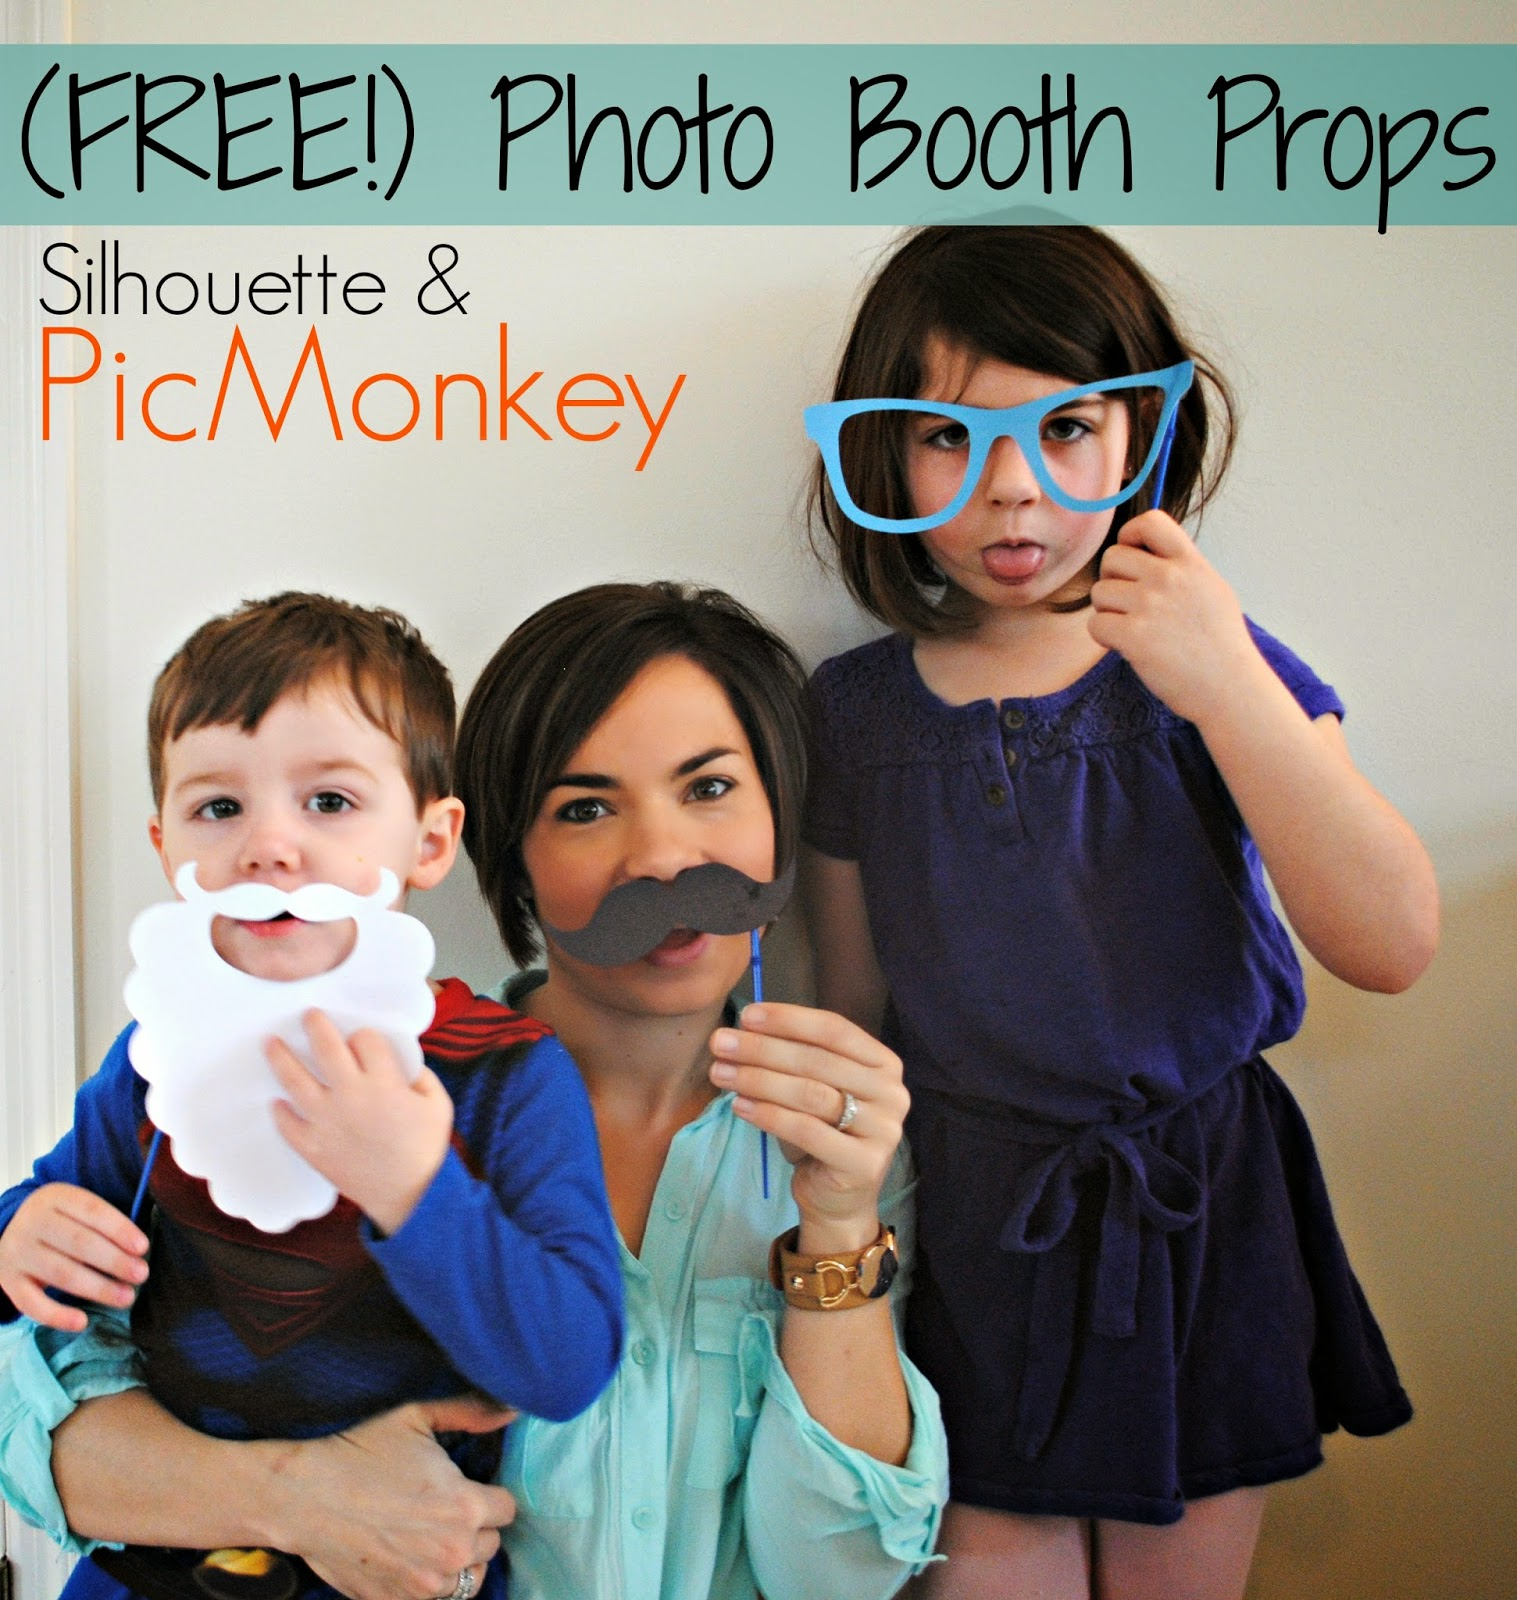 Photobooth props, PicMonkey, Silhouette, DIY, do it yourself, free